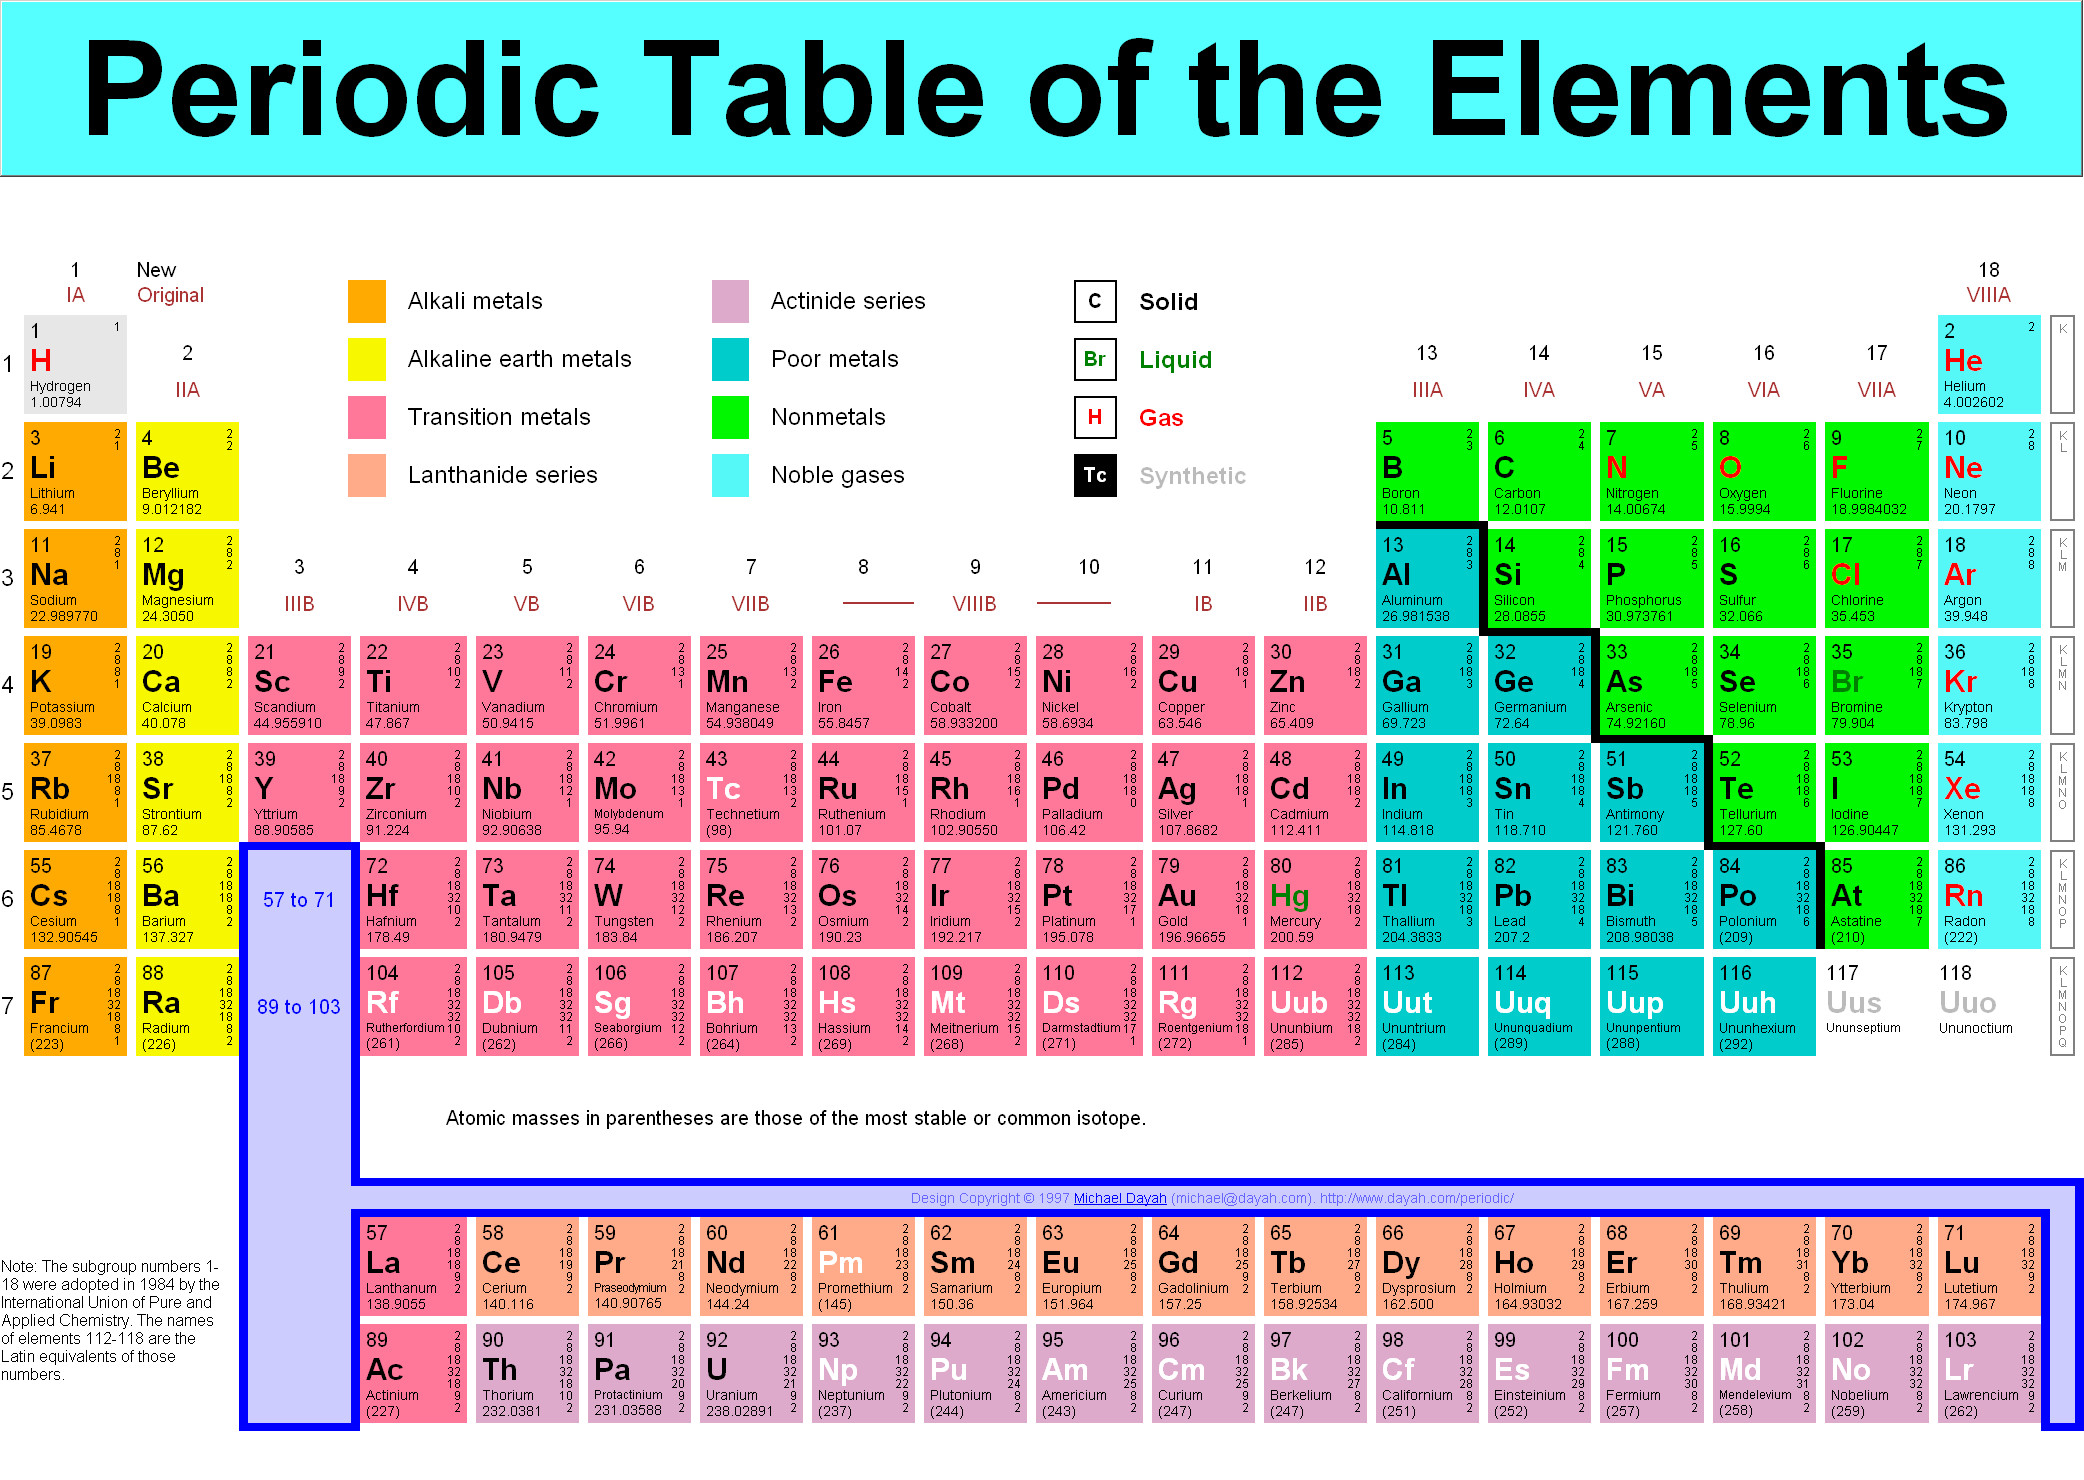 Periodic table wallpaper high resolution 73 images 3420x1957 amazing periodic table of elements poster and incredible ideas gamestrikefo Images